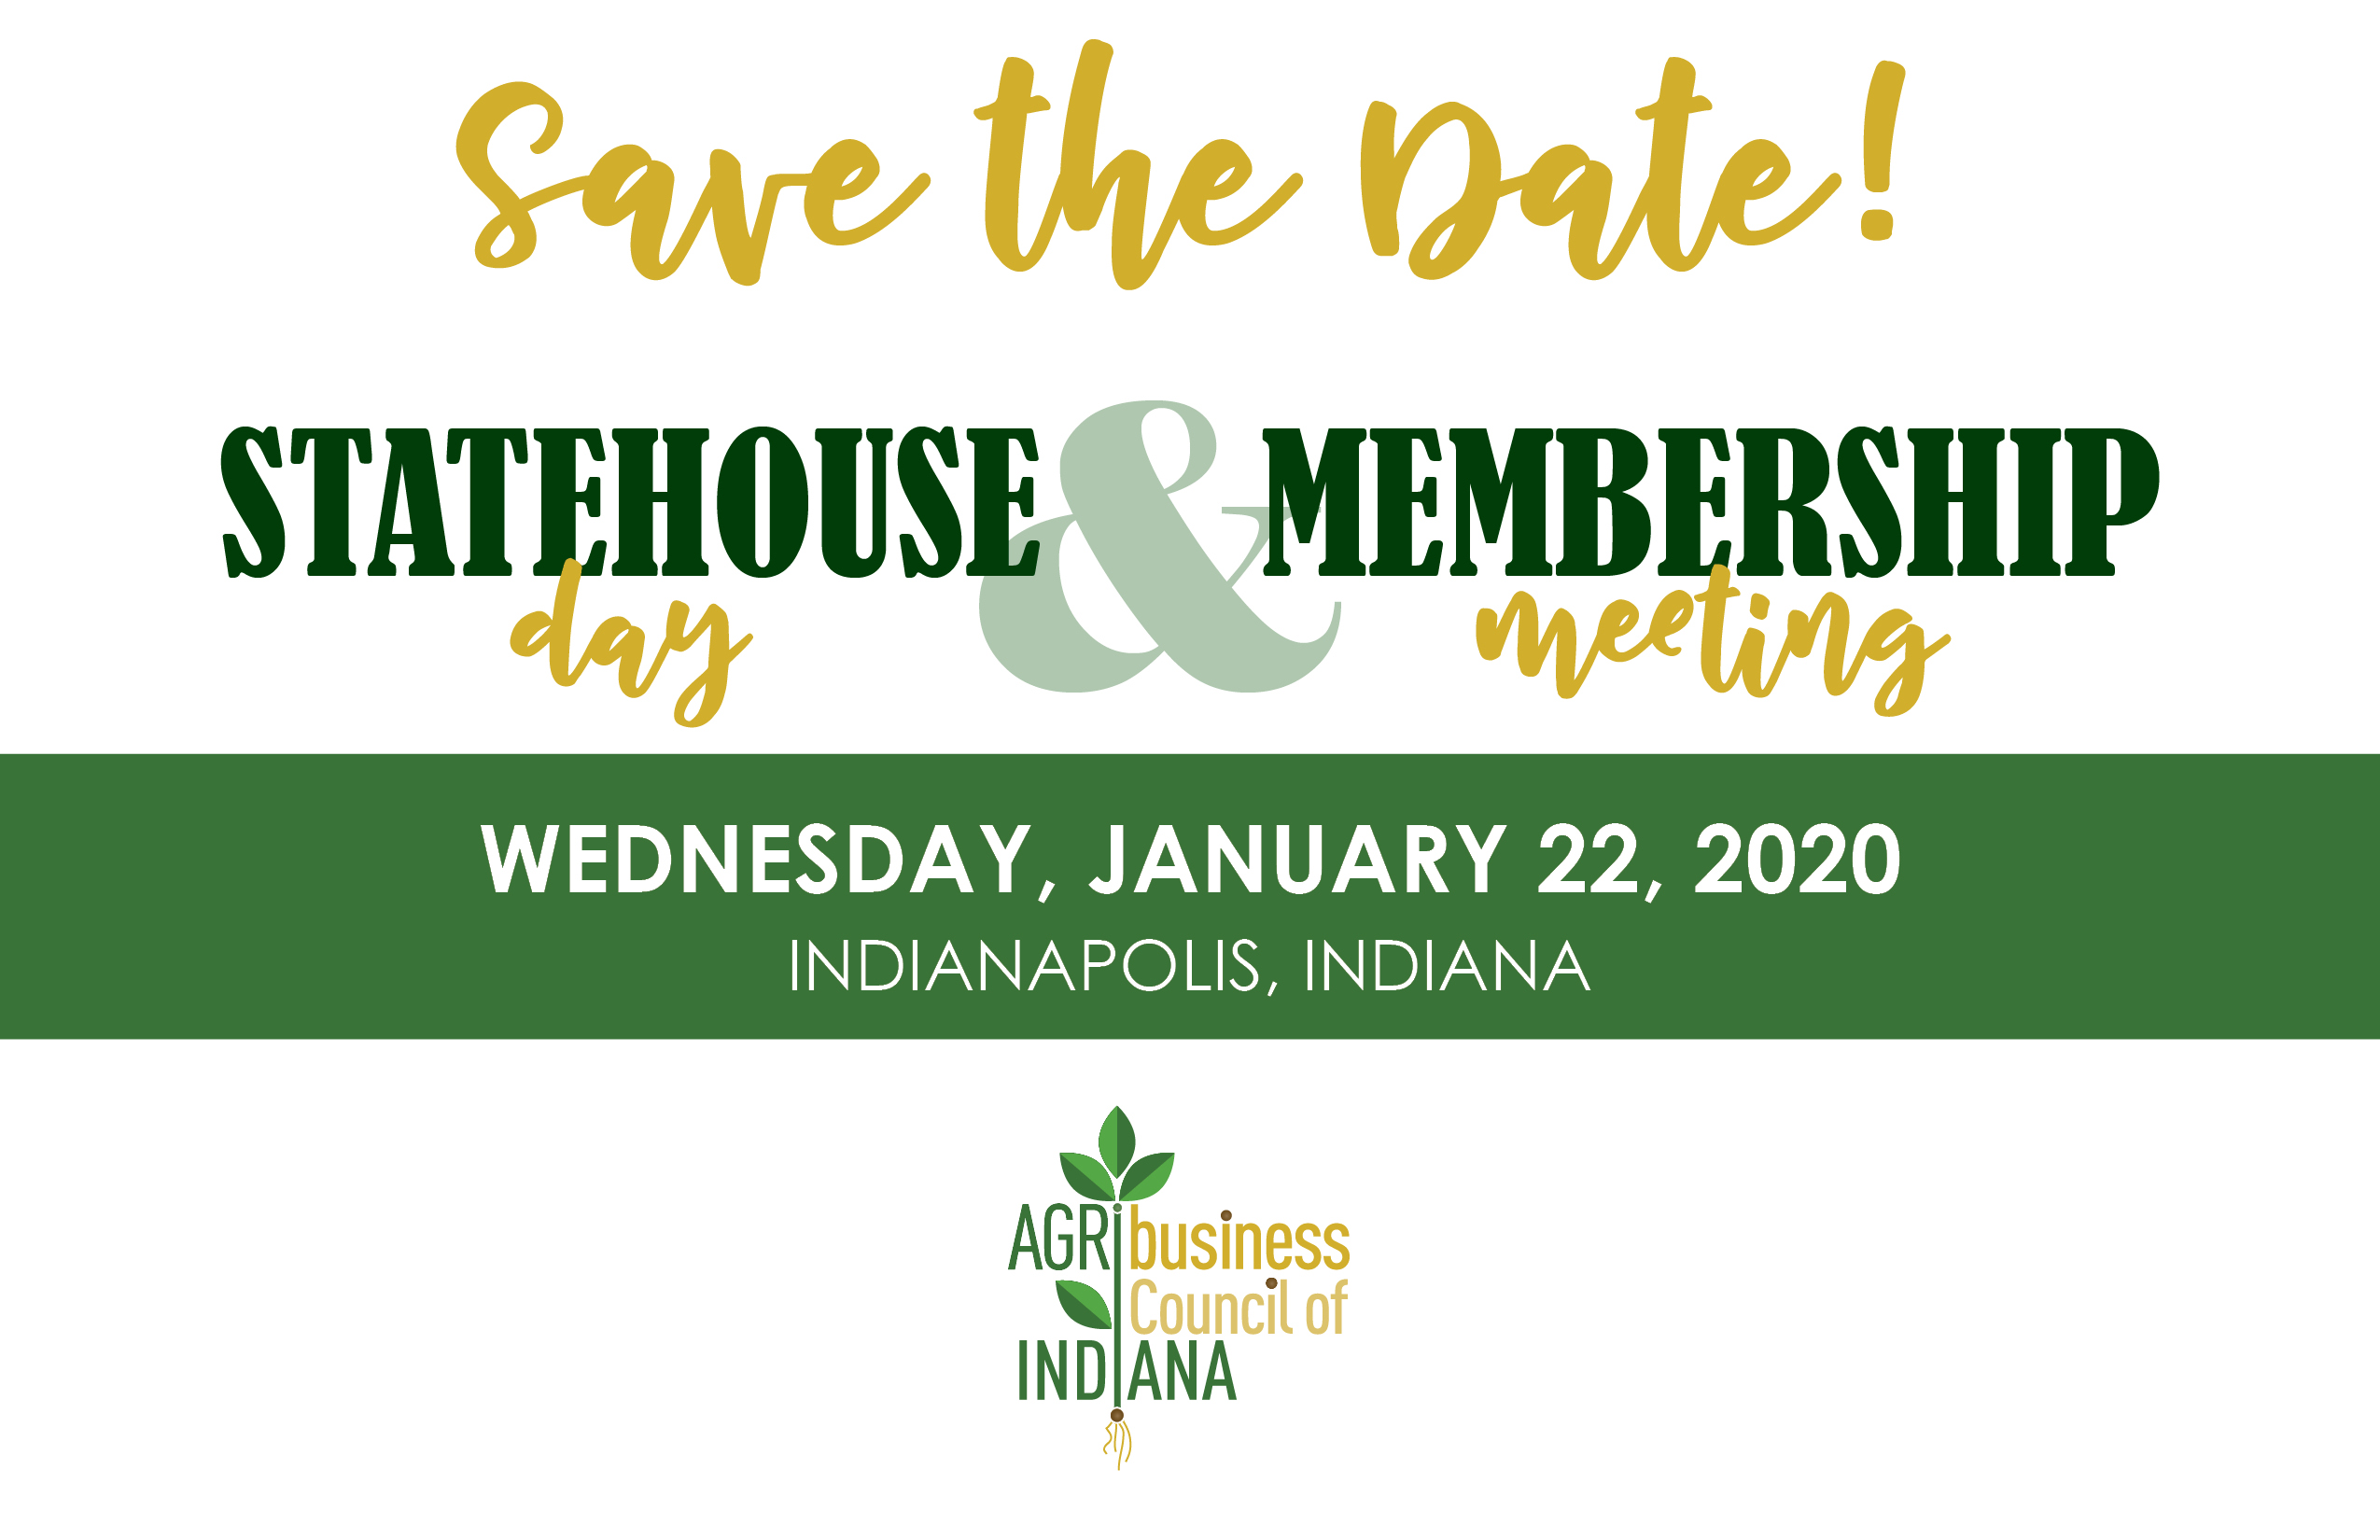 Statehouse Day Save the Date